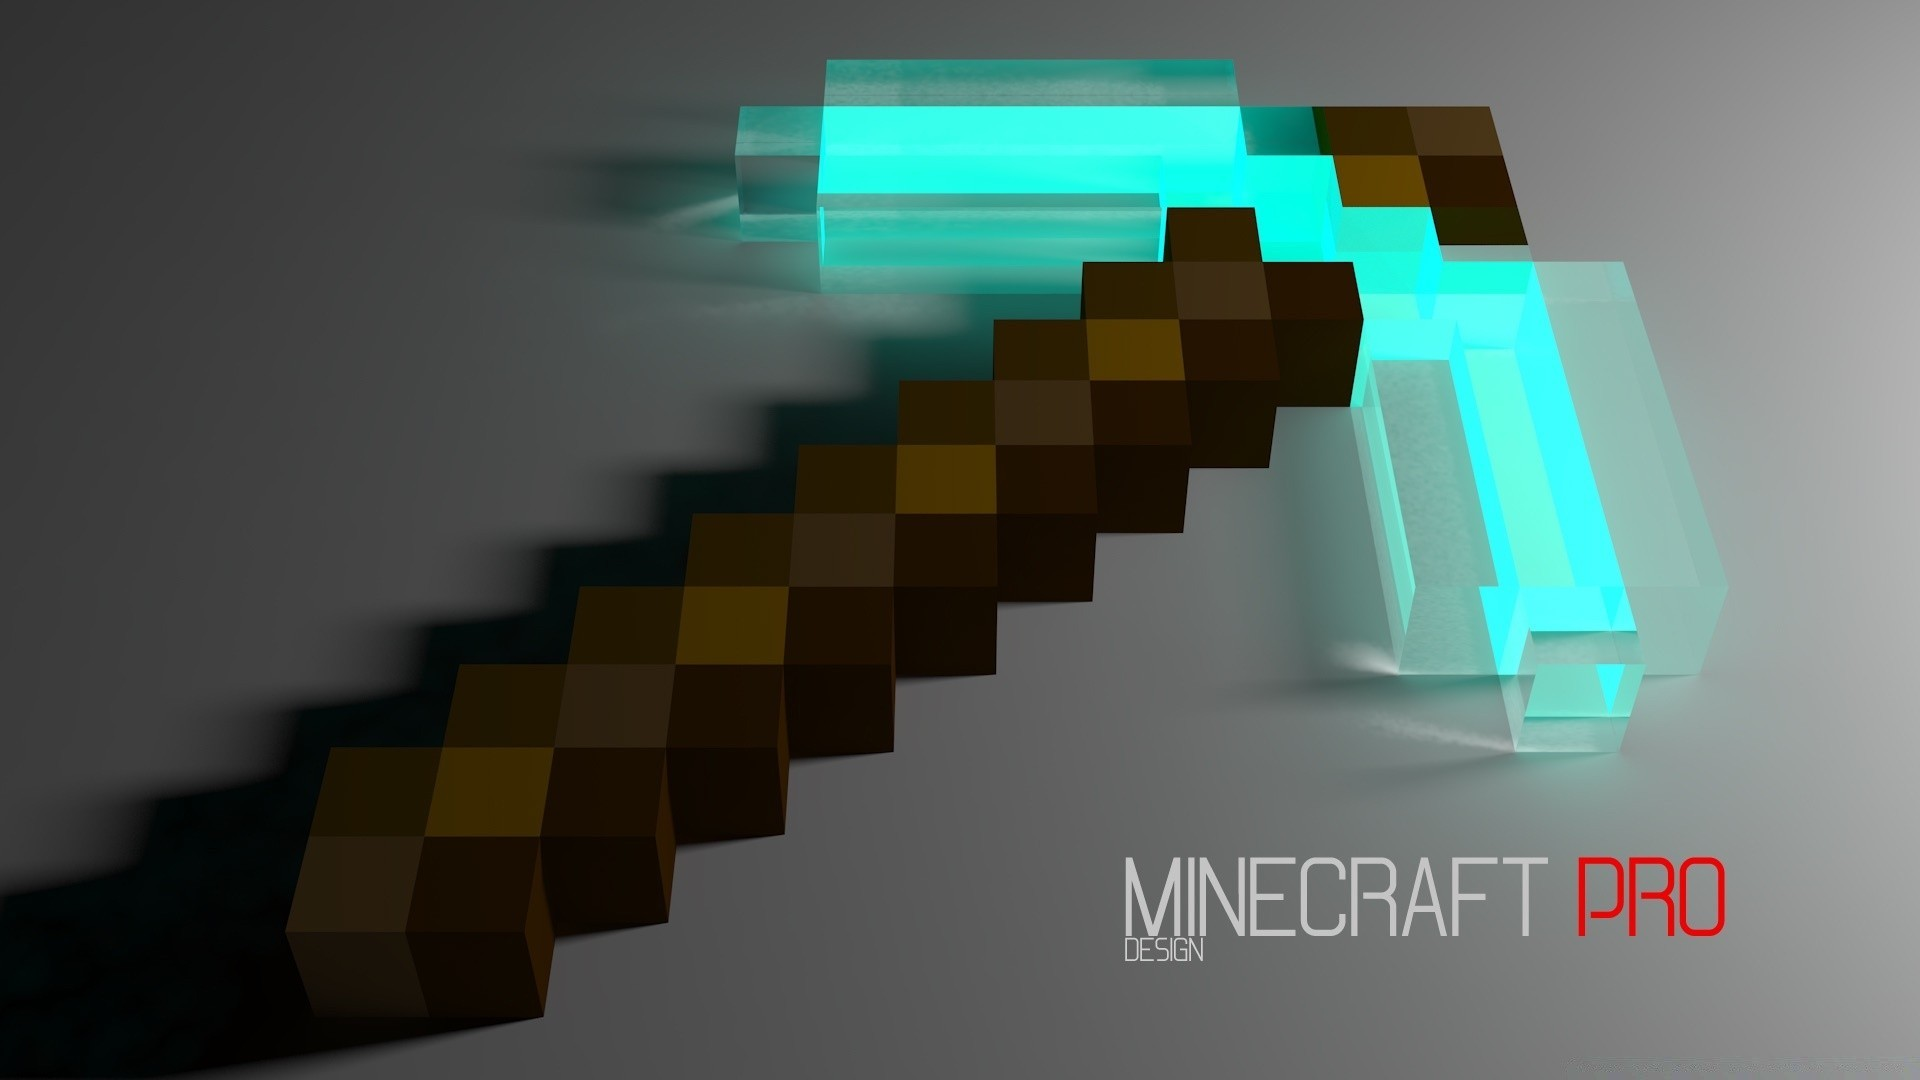 Cool Wallpaper Minecraft Android - 529683042939295  Perfect Image Reference_508619.jpg